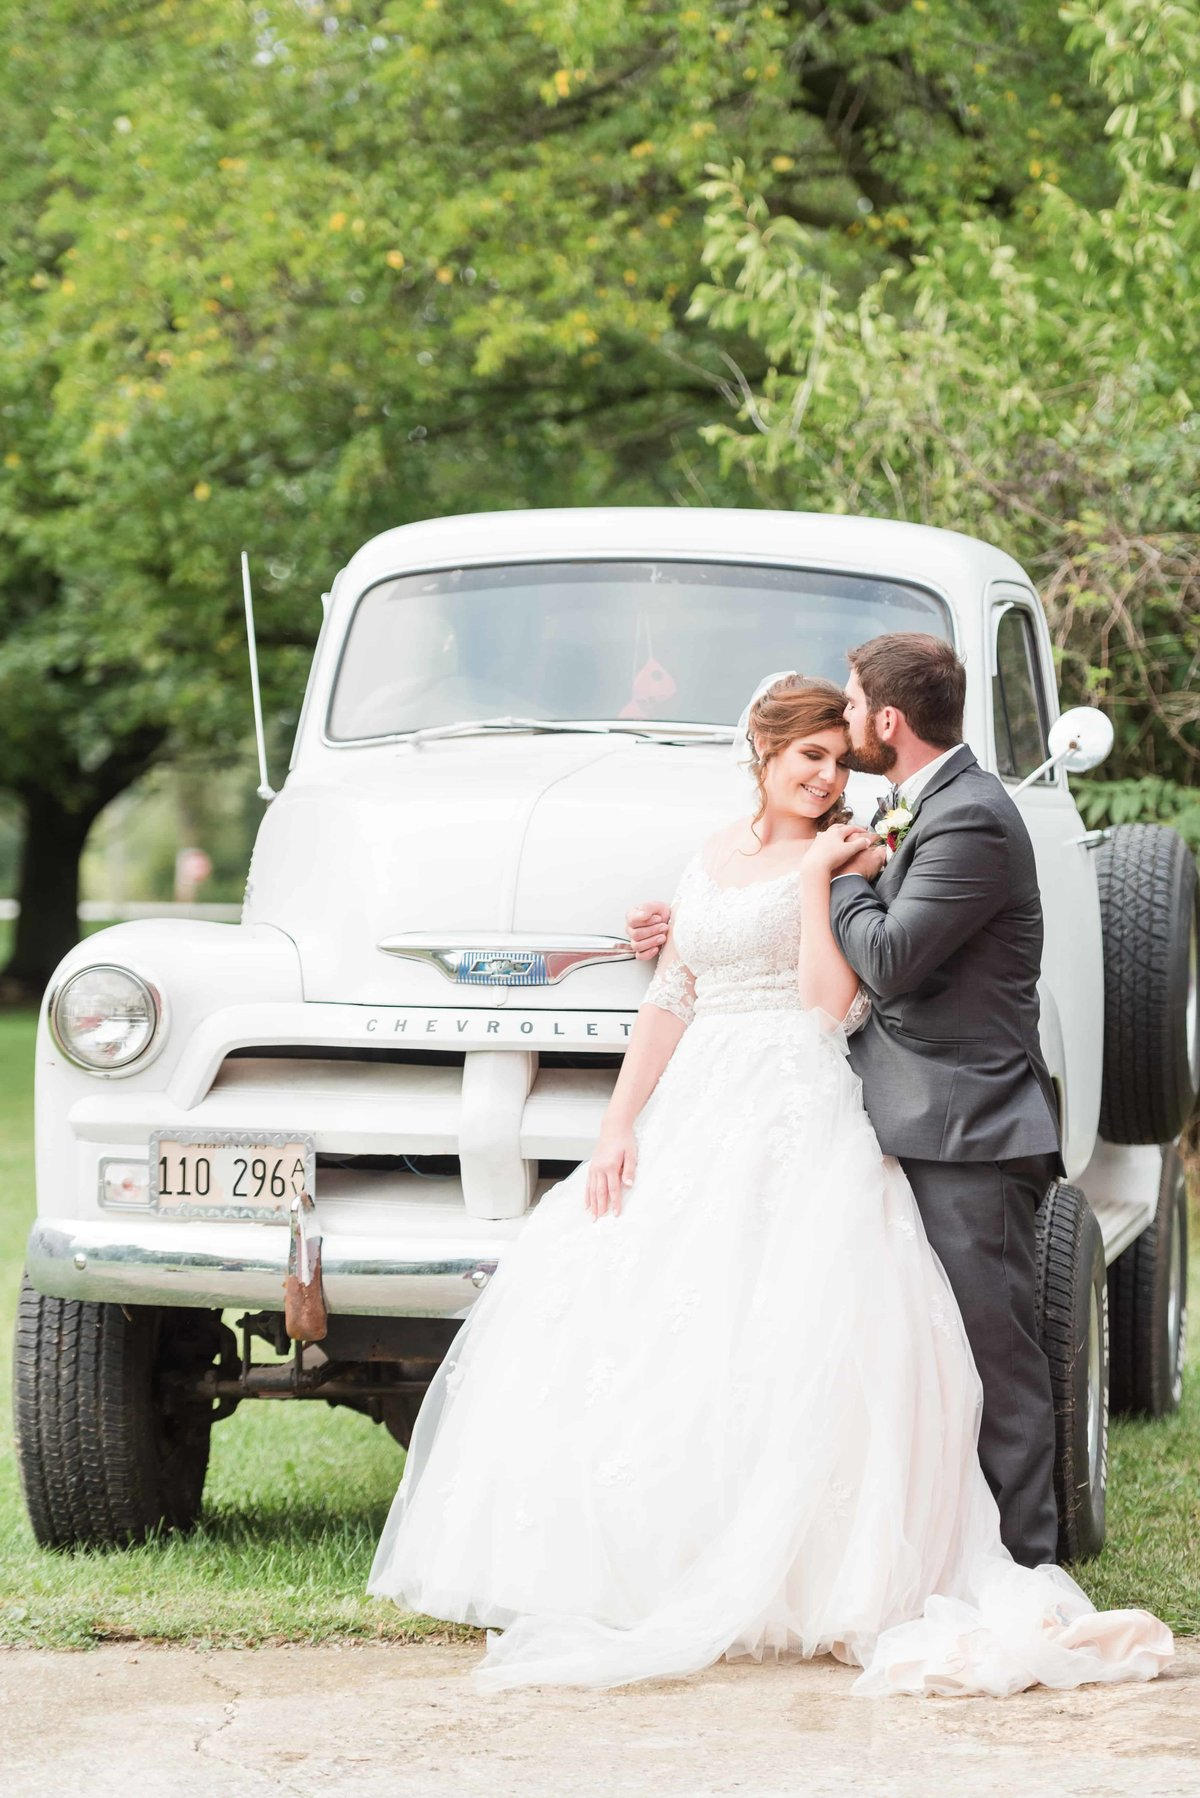 Bride and groom sharing a moment in front of vintage chevy truck.